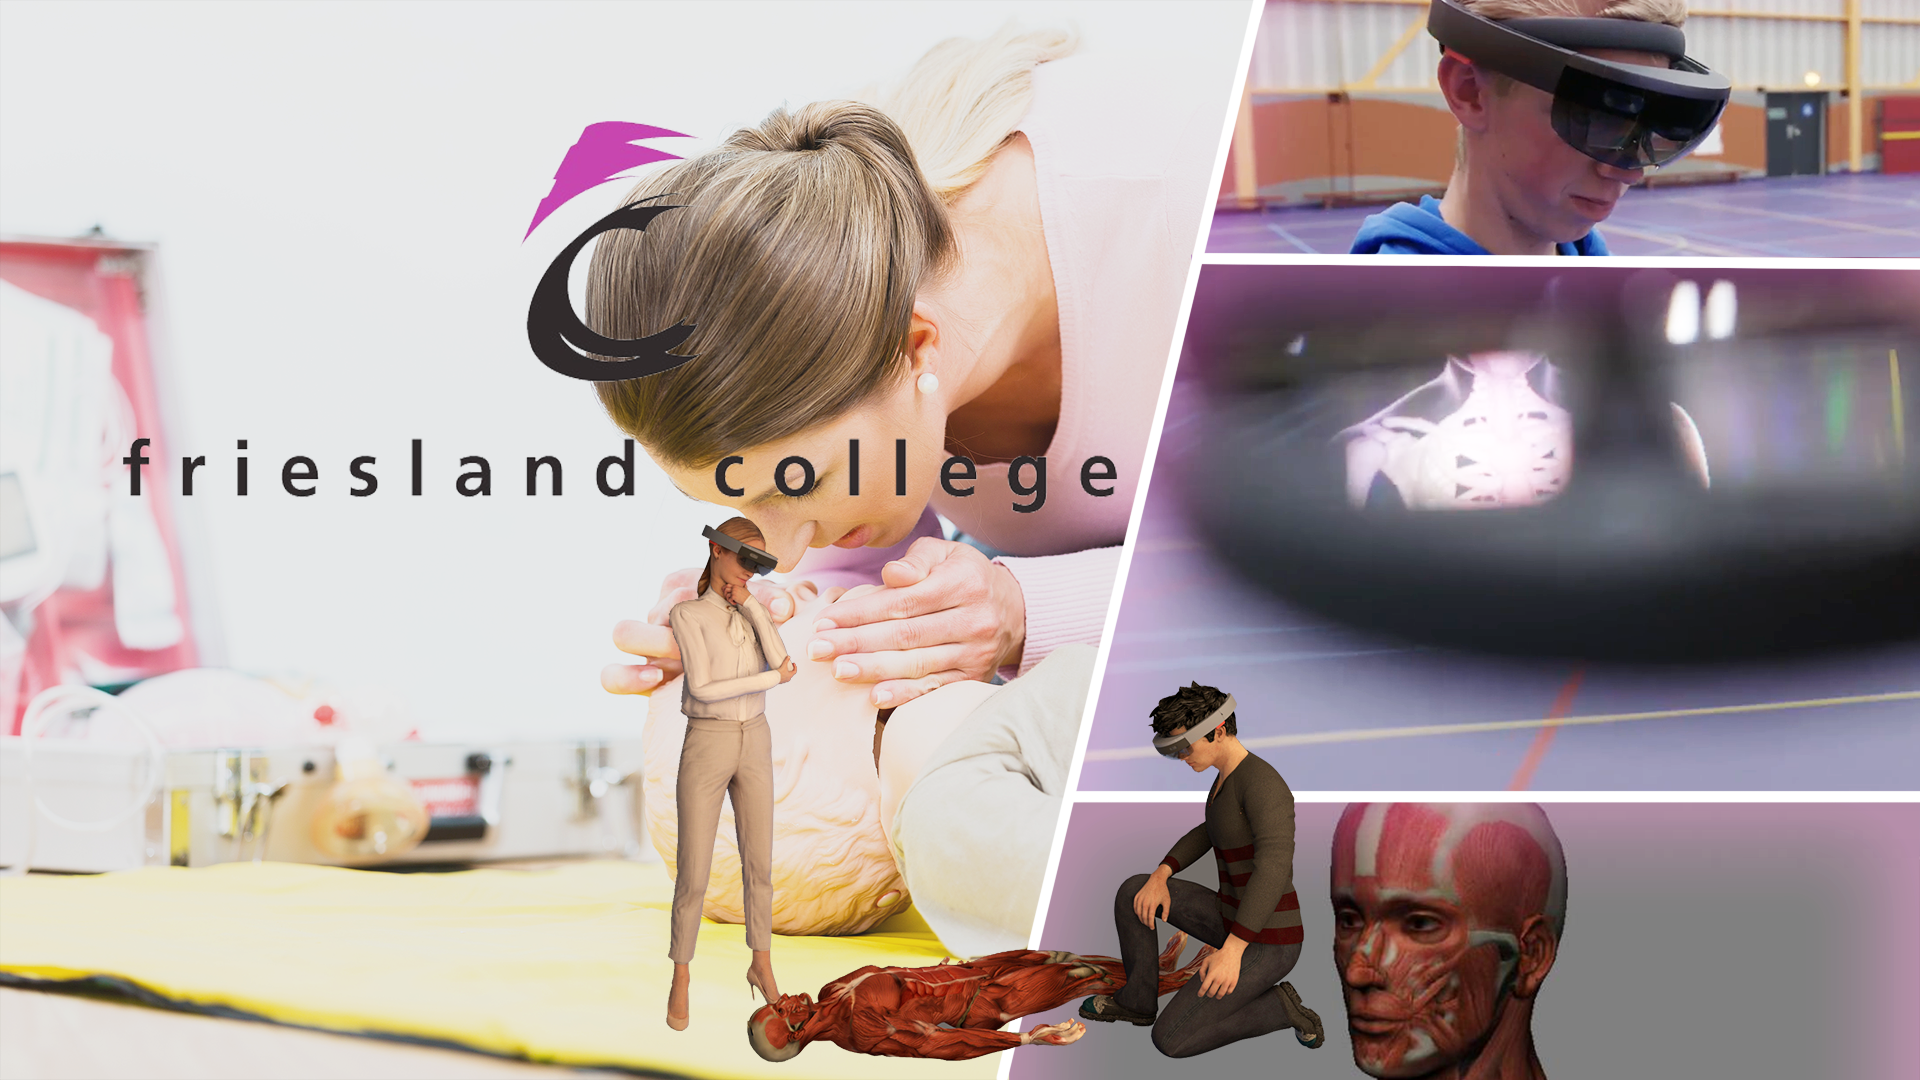 augmented- en mixed reality campagnes (Friesland College high)